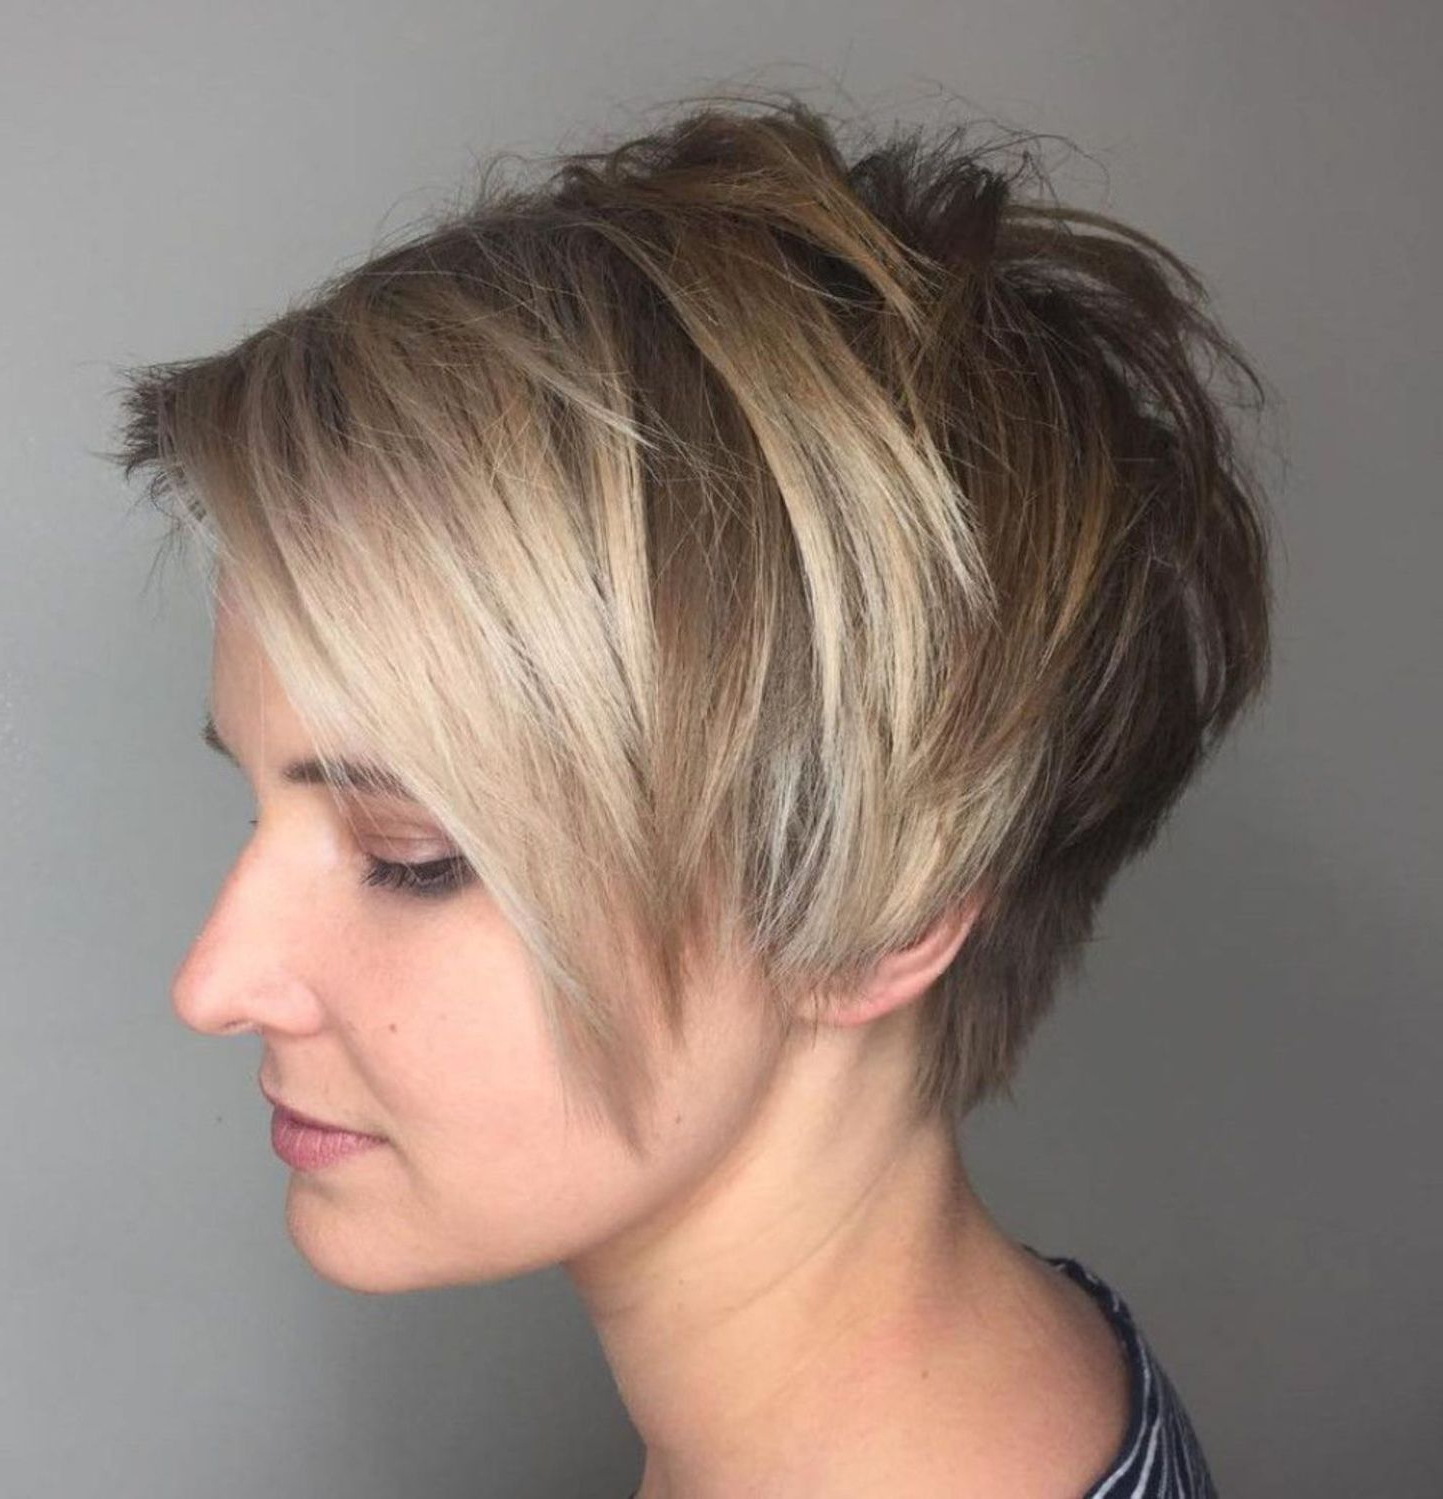 Pin On Short Hair With Regard To Well Known Short Choppy Layers Pixie Bob Hairstyles (Gallery 1 of 20)